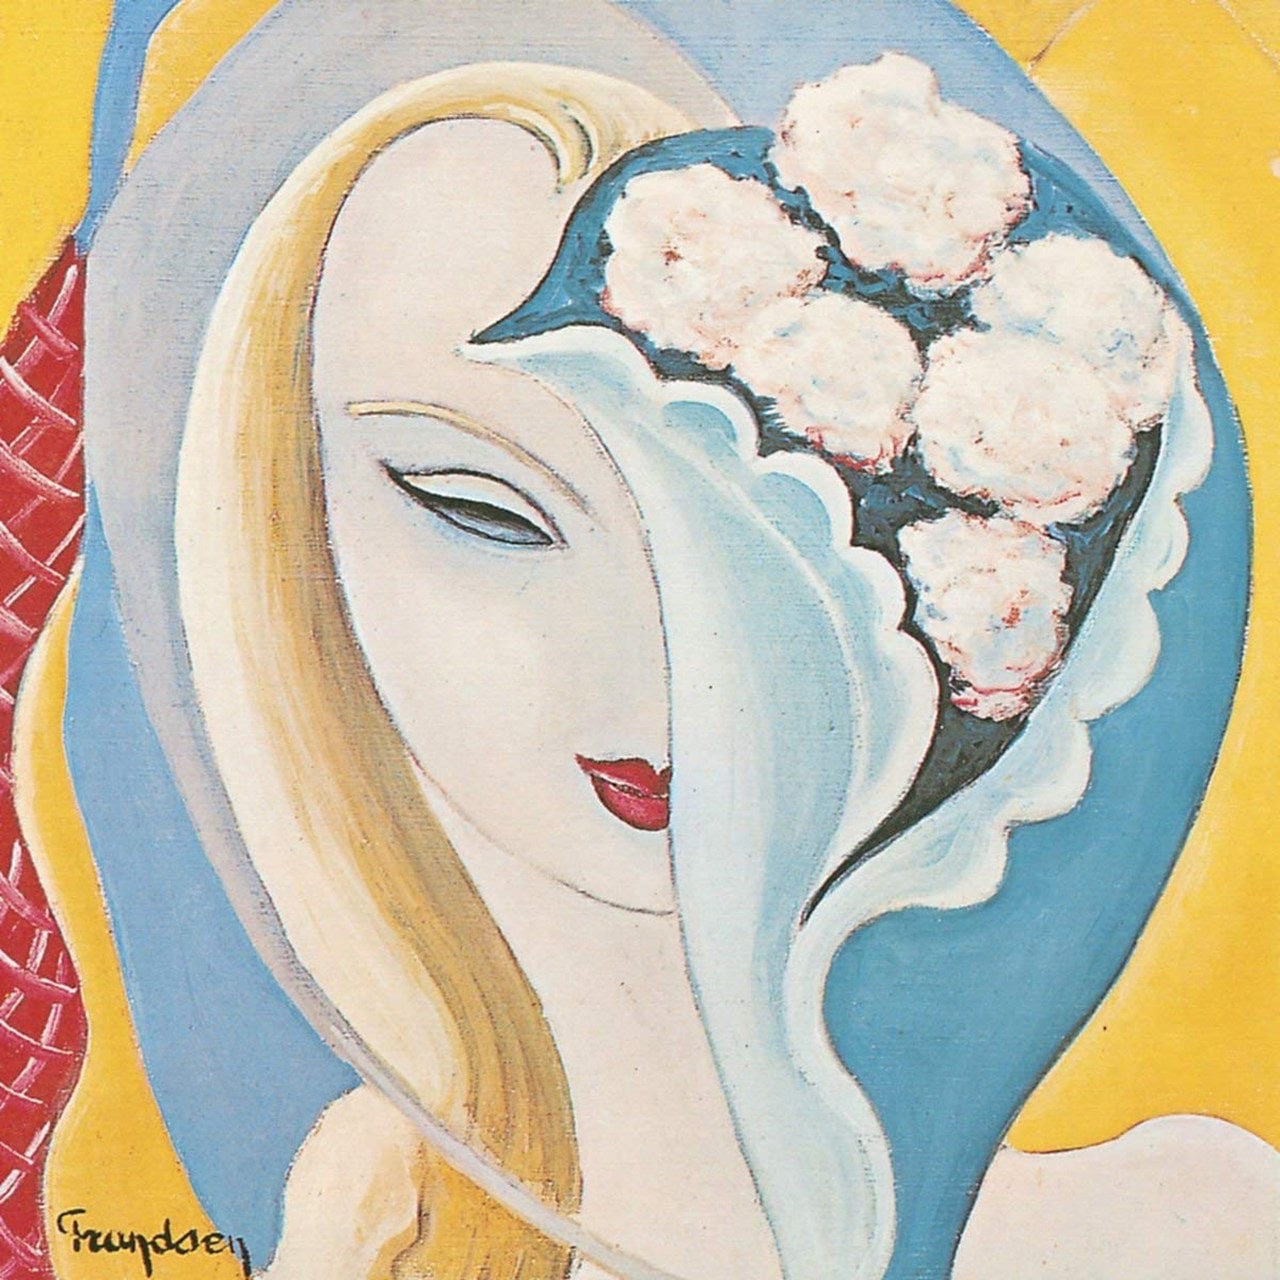 Derek & The Dominos - Layla And Other Assorted Love Songs (2LP Gatefold Sleeve)